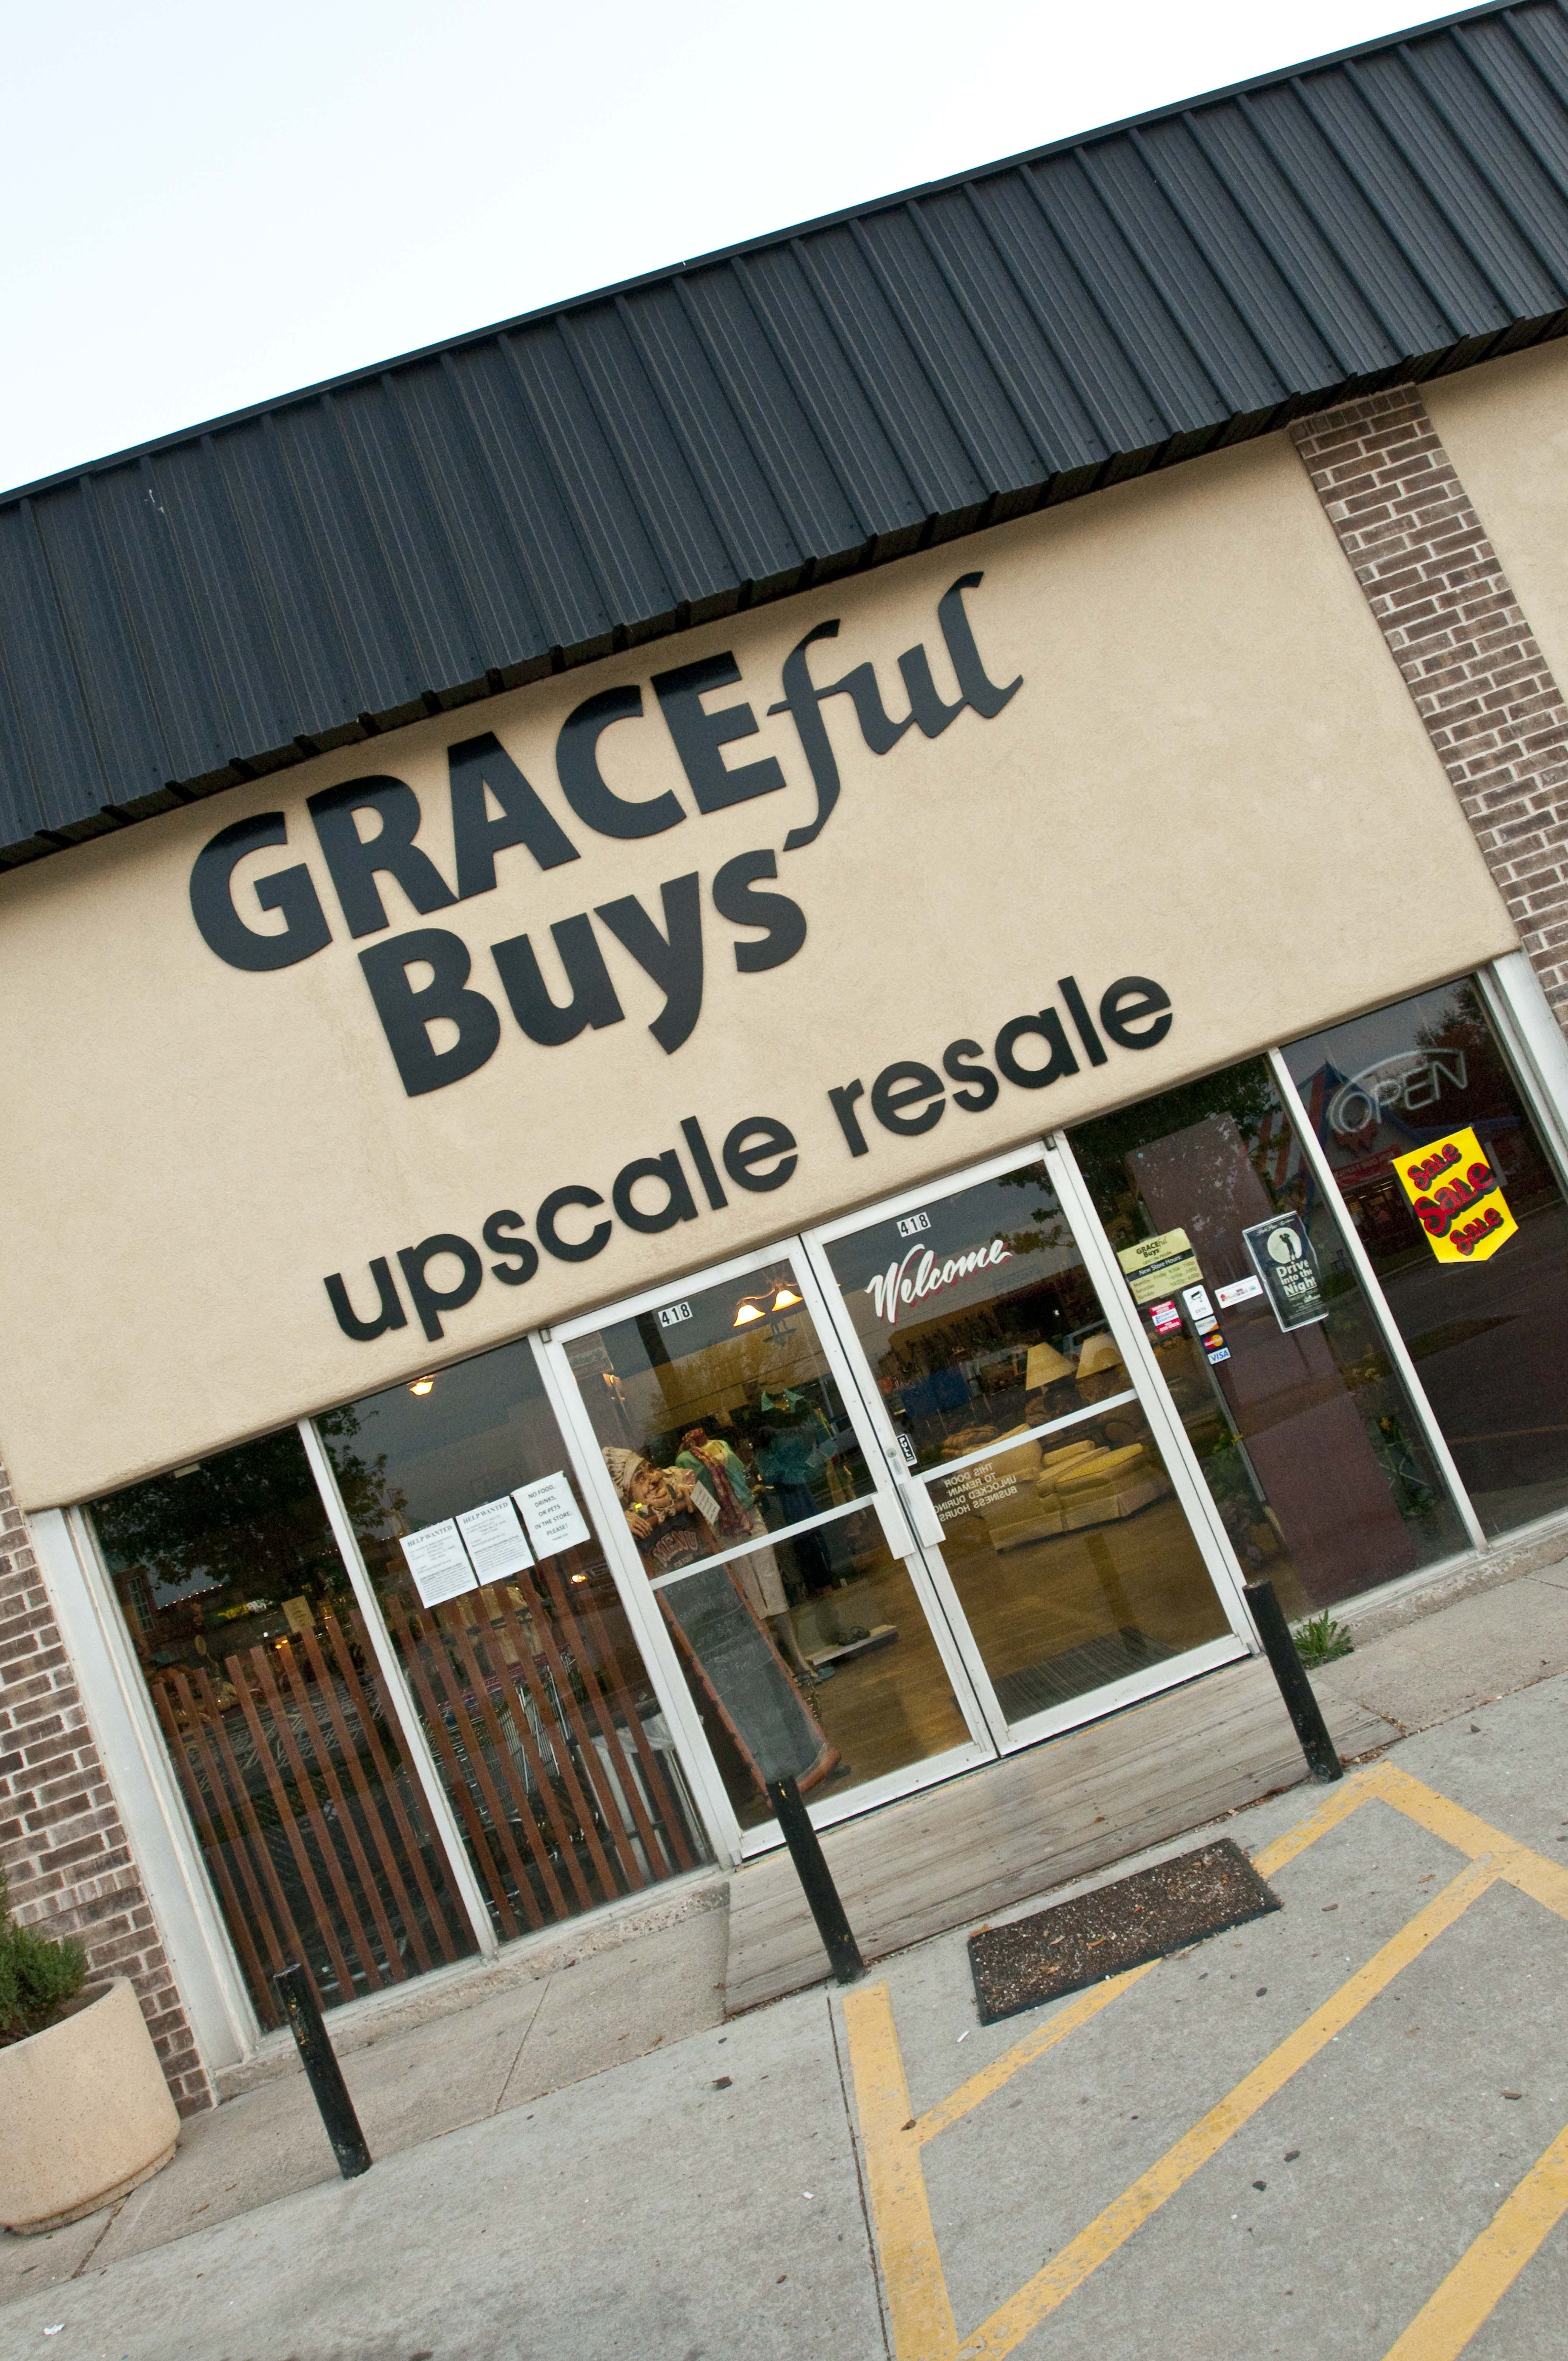 store front at 419 e northwest hwy in grapevine tx graceful buys upscale resale discount. Black Bedroom Furniture Sets. Home Design Ideas